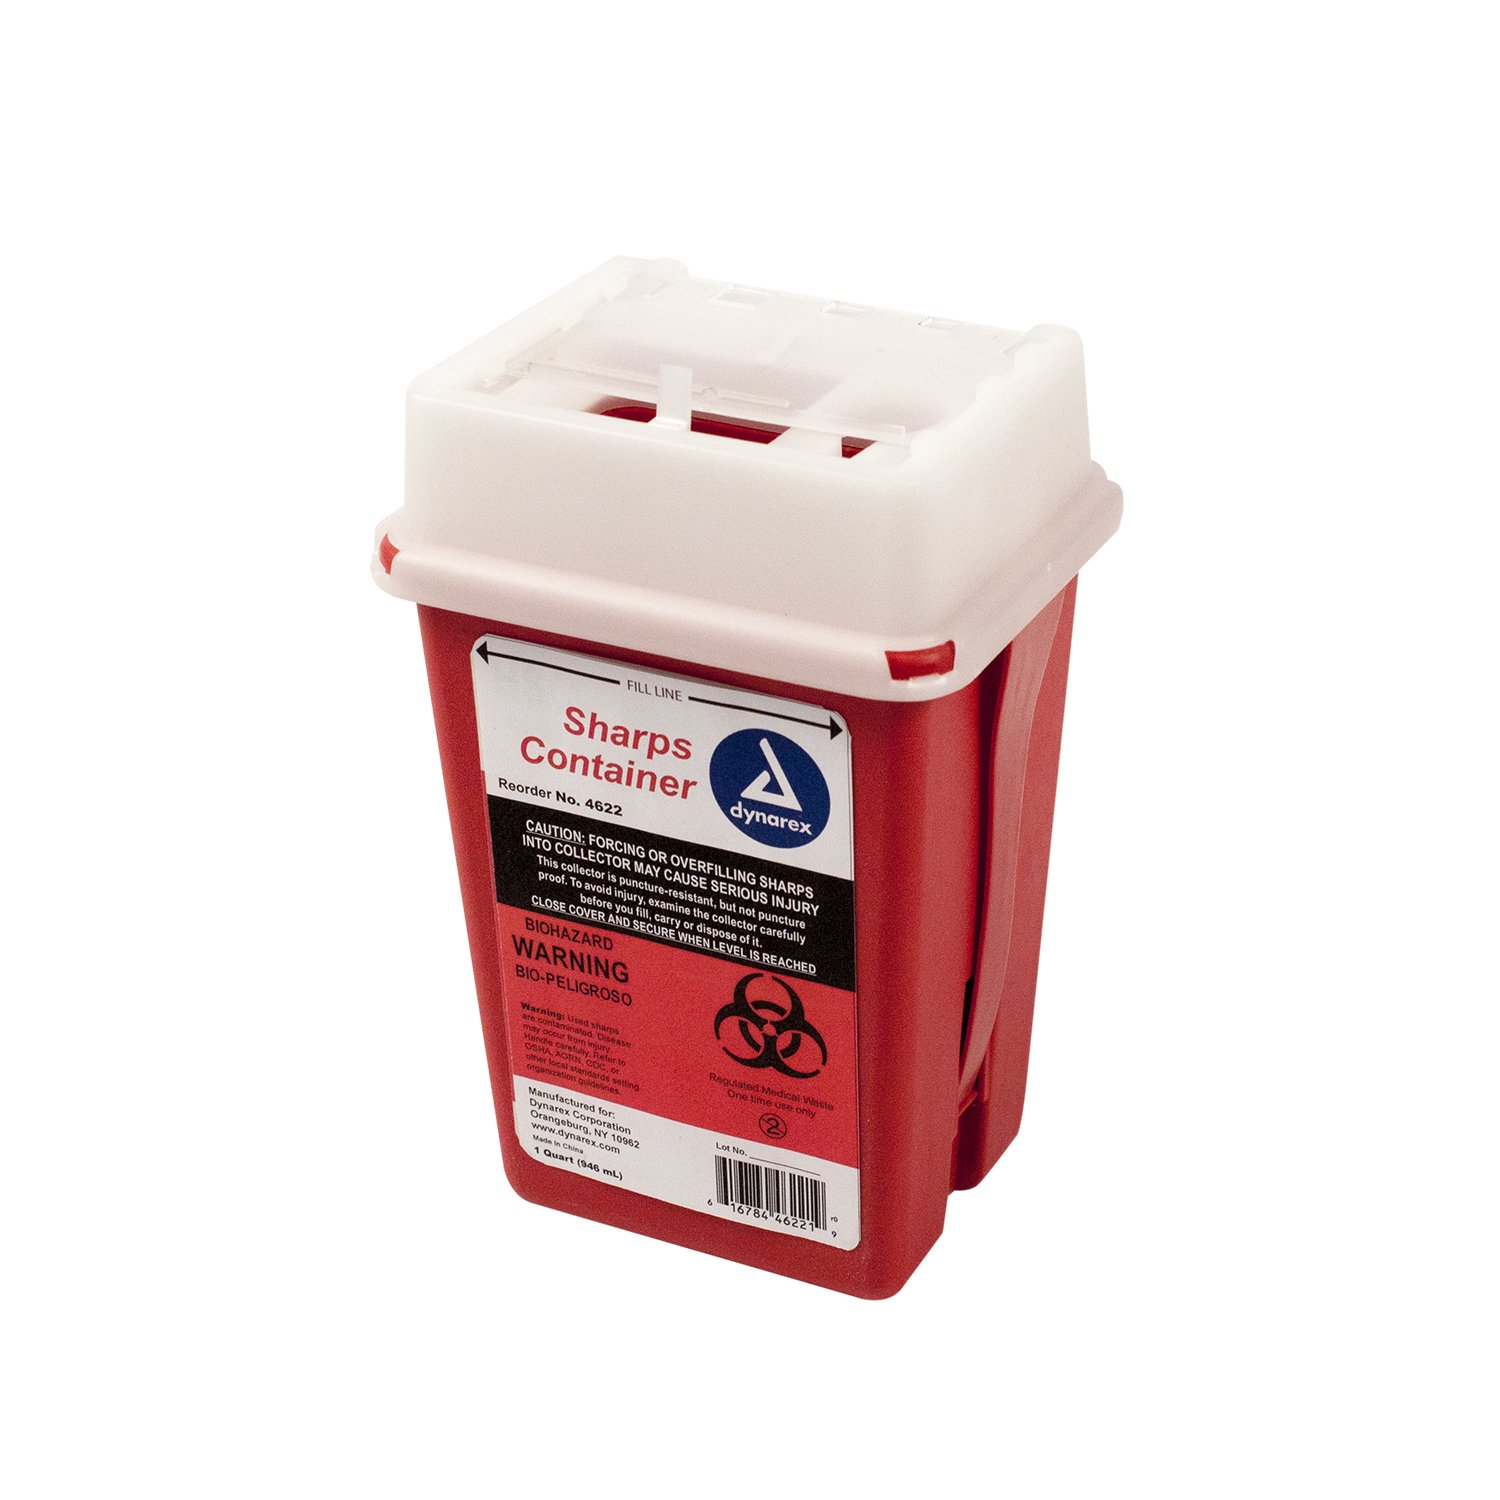 Sharps Container 1 Quart - Plus Vakly Biohazard Disposal Guide (5 Pack) by Vakly (Image #1)